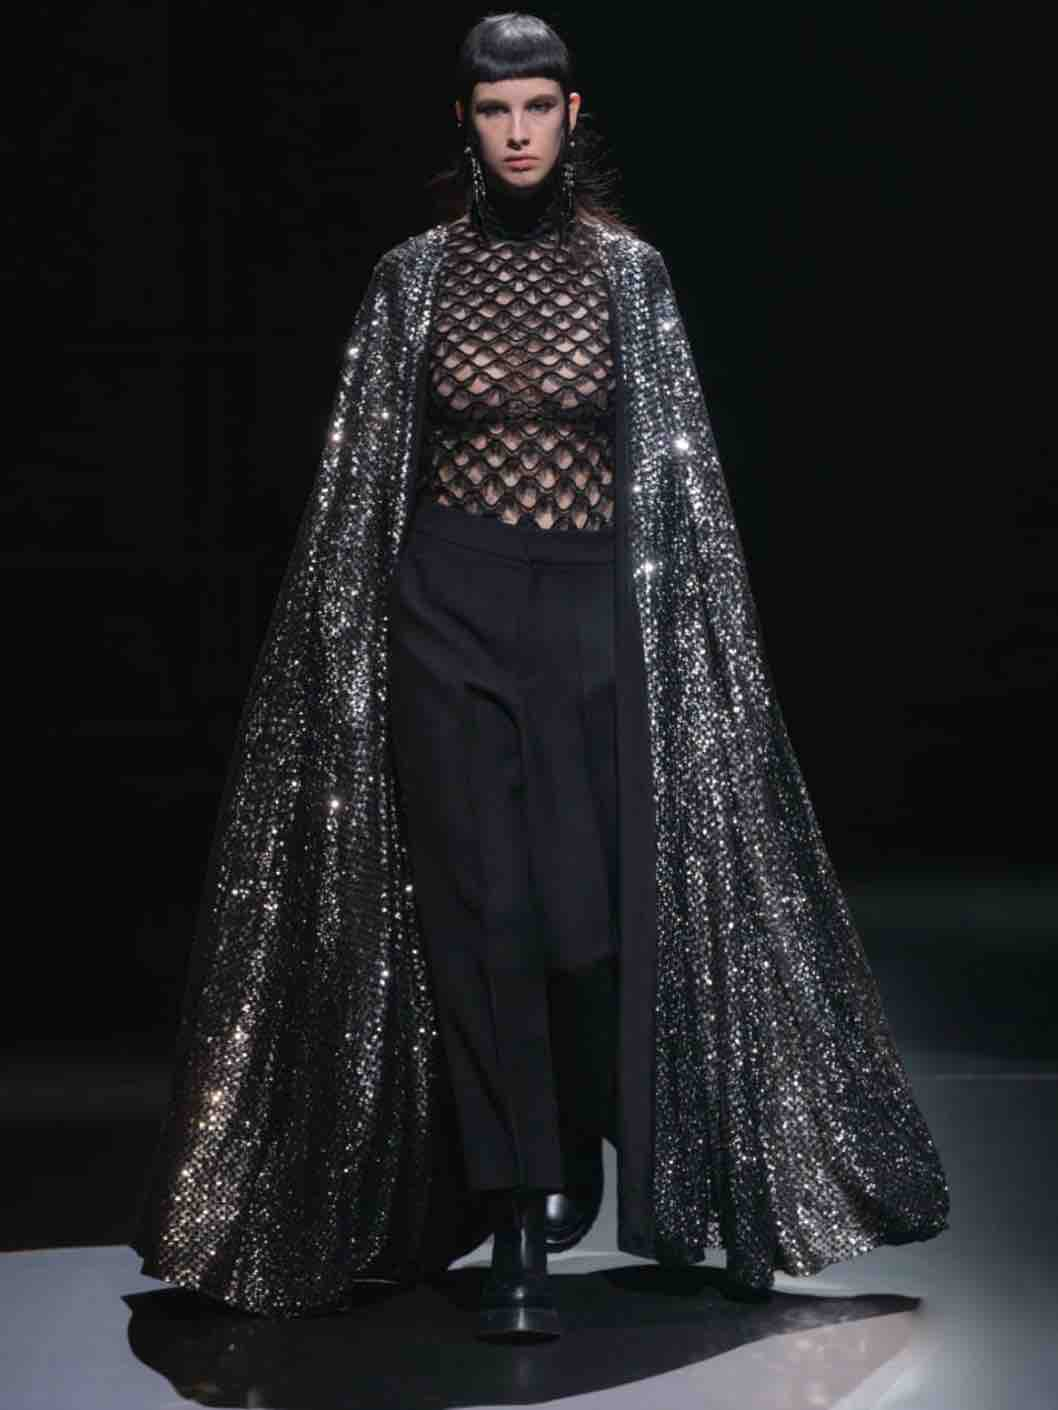 Valentino Sparkling Look Is One Of The Style Trends To Shop For Fall 2021